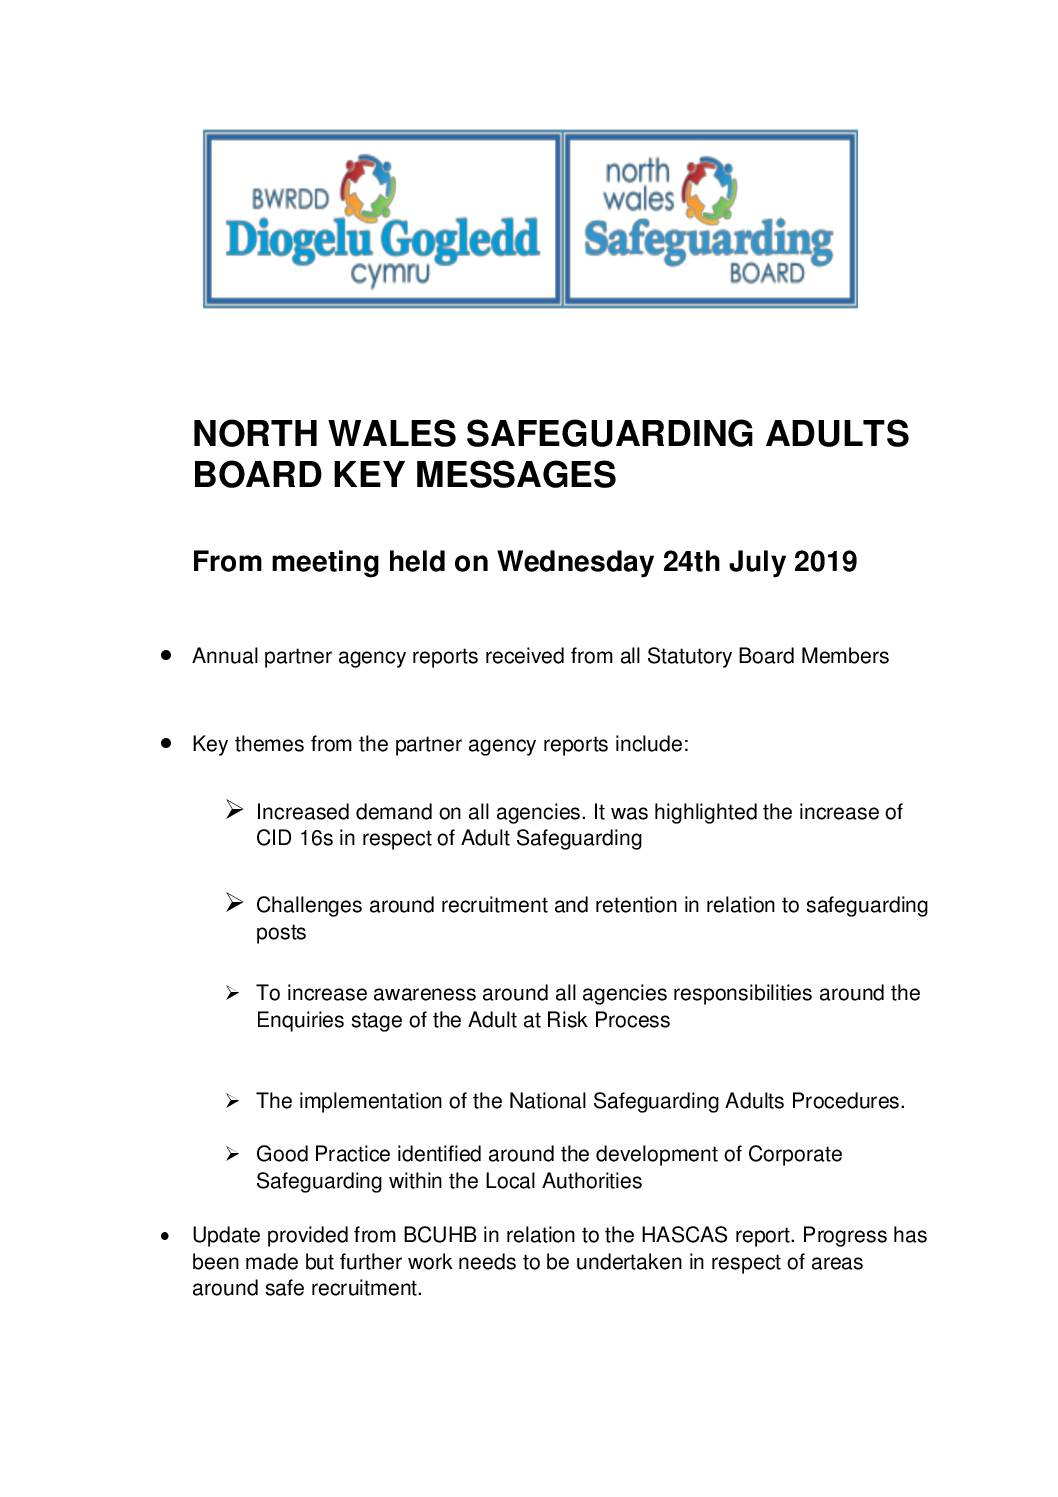 Key Messages NWSAB July 2019